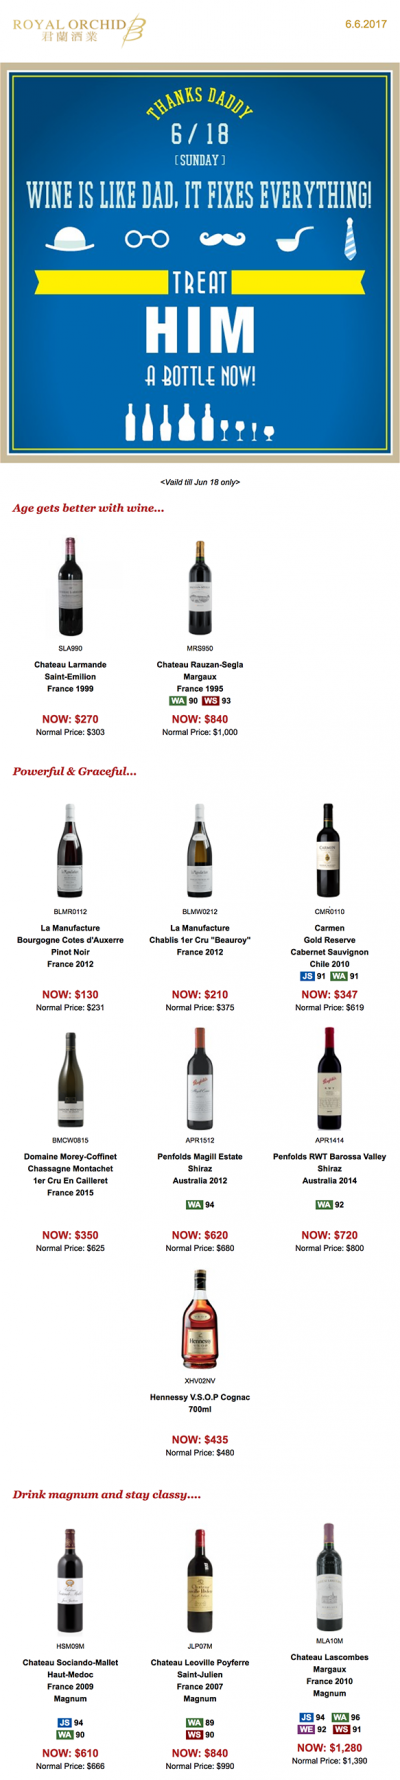 Newsletter by Royal Orchid Wine: Wine is like dad, it fixes everything